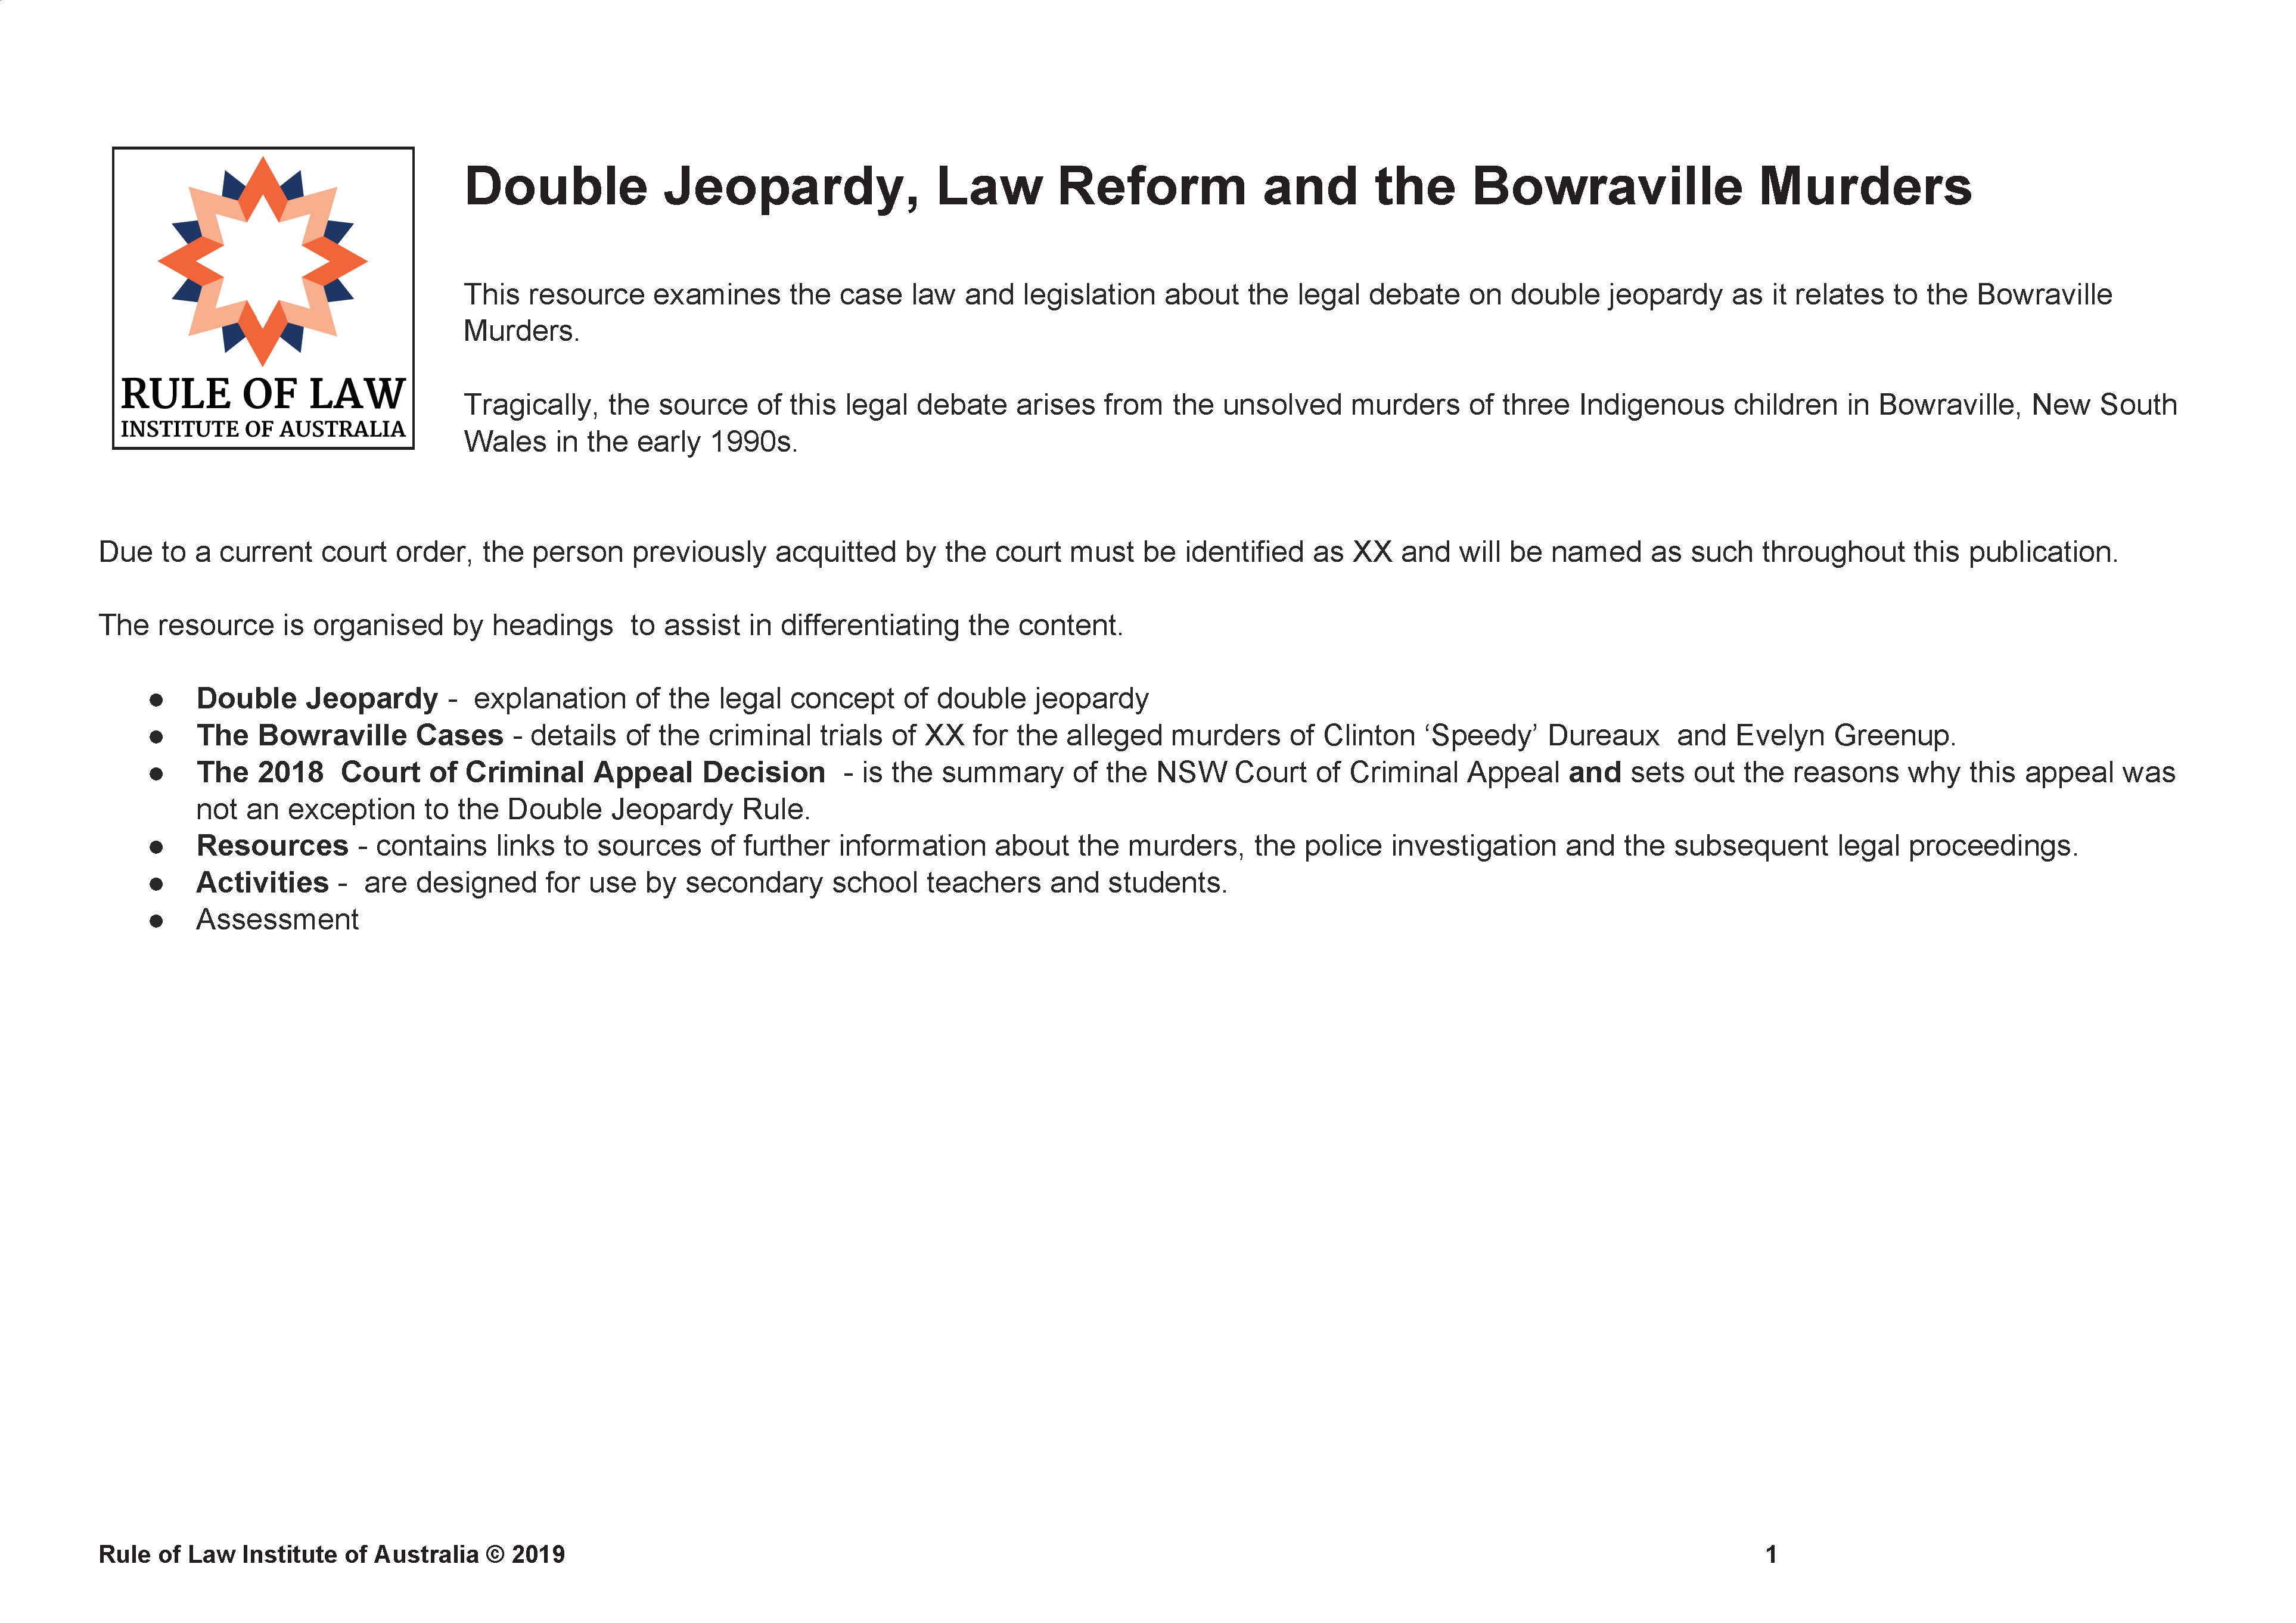 Double Jeopardy and the Bowraville murders - Australia's